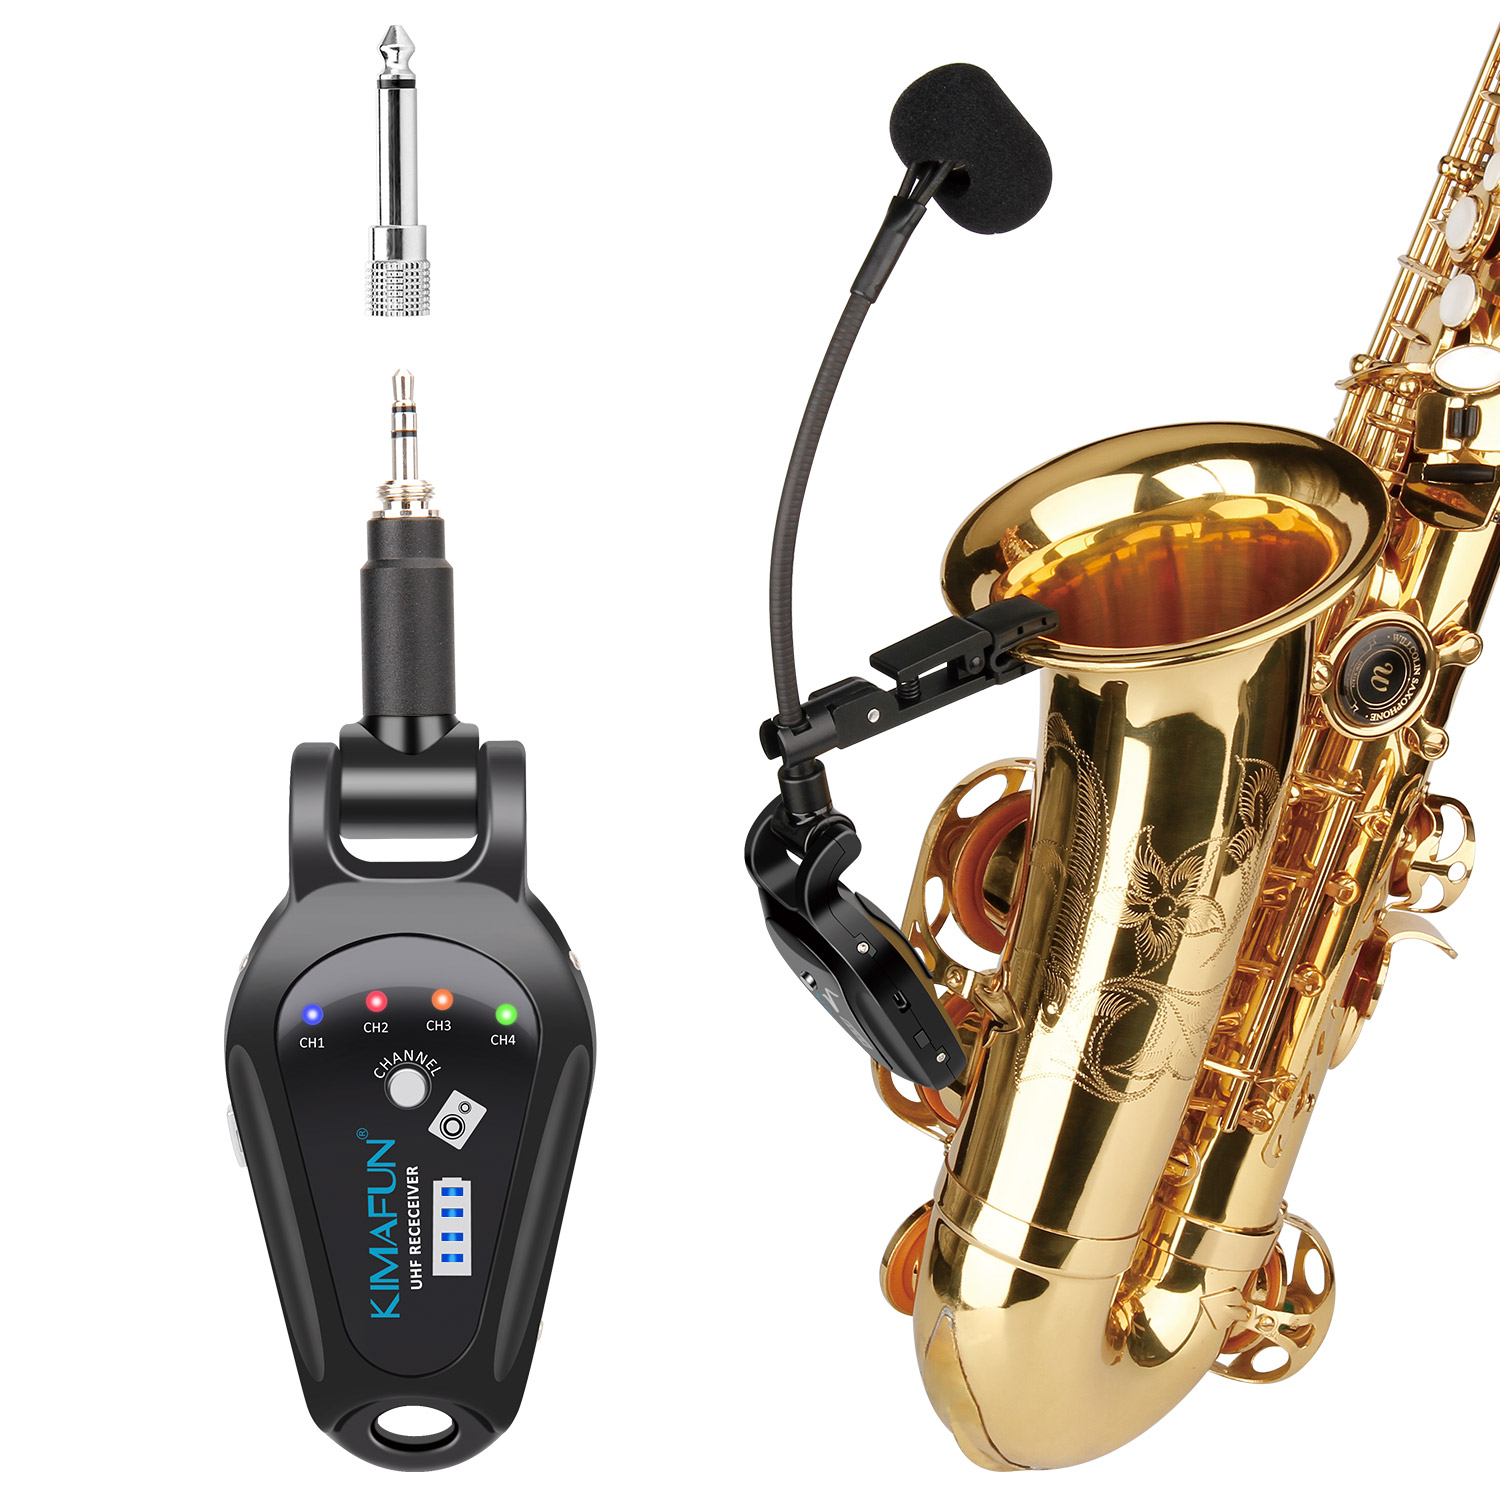 KM-U308A  Wireless UHF frequency saxophone microphone 4 channels microphone use for saxophone, large, small, and trumpet, any tube instruments.